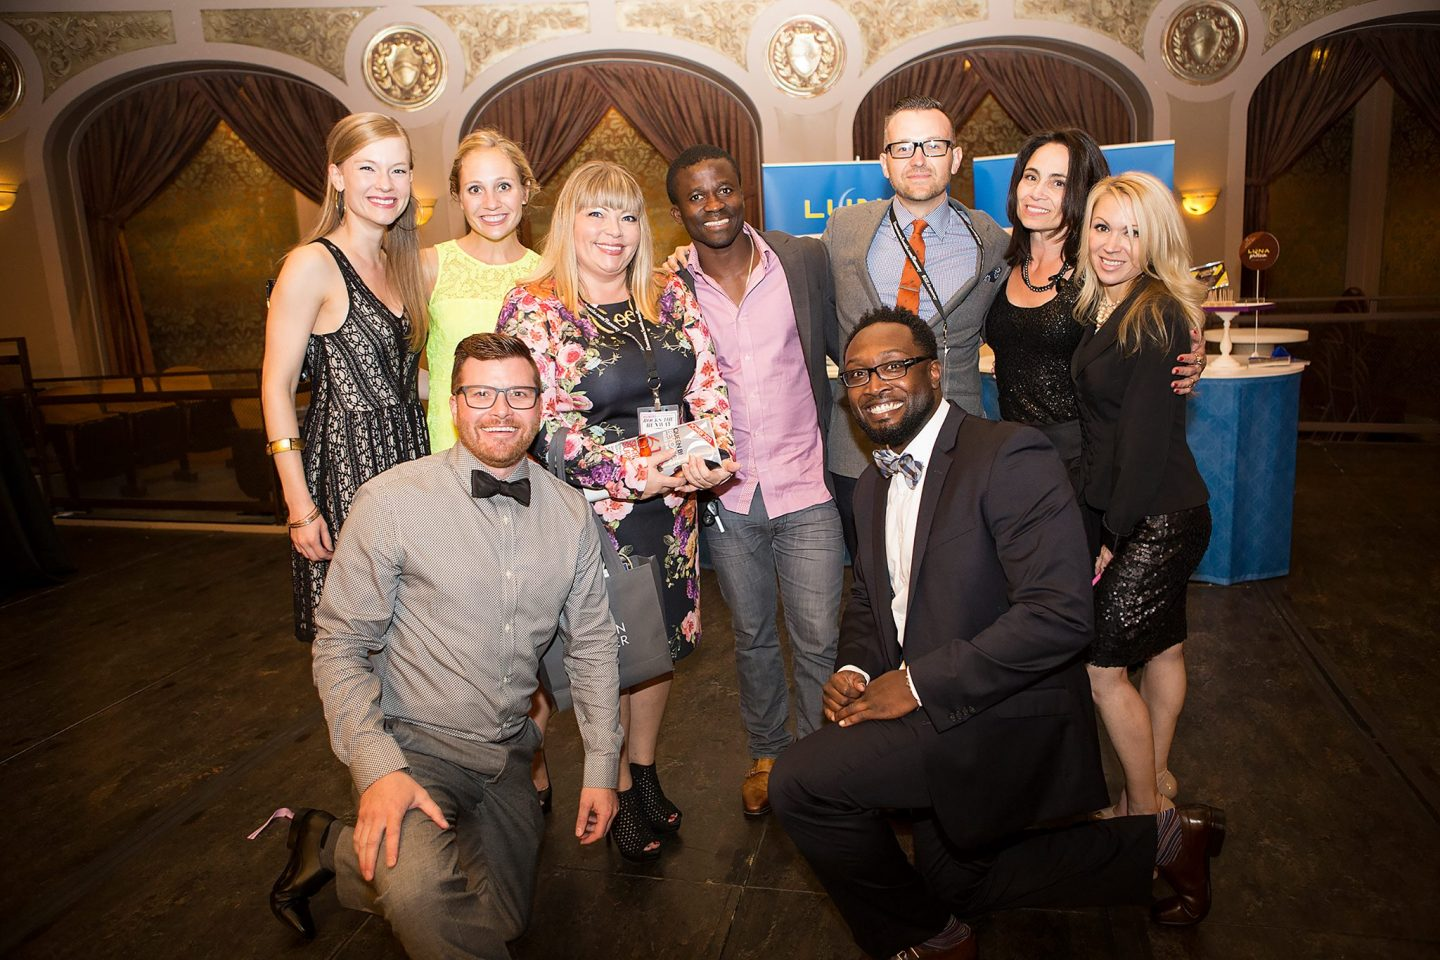 Fall Fashion explodes at Downtown Seattle Rocks the Runway at this historic Paramount Theatre in 2014